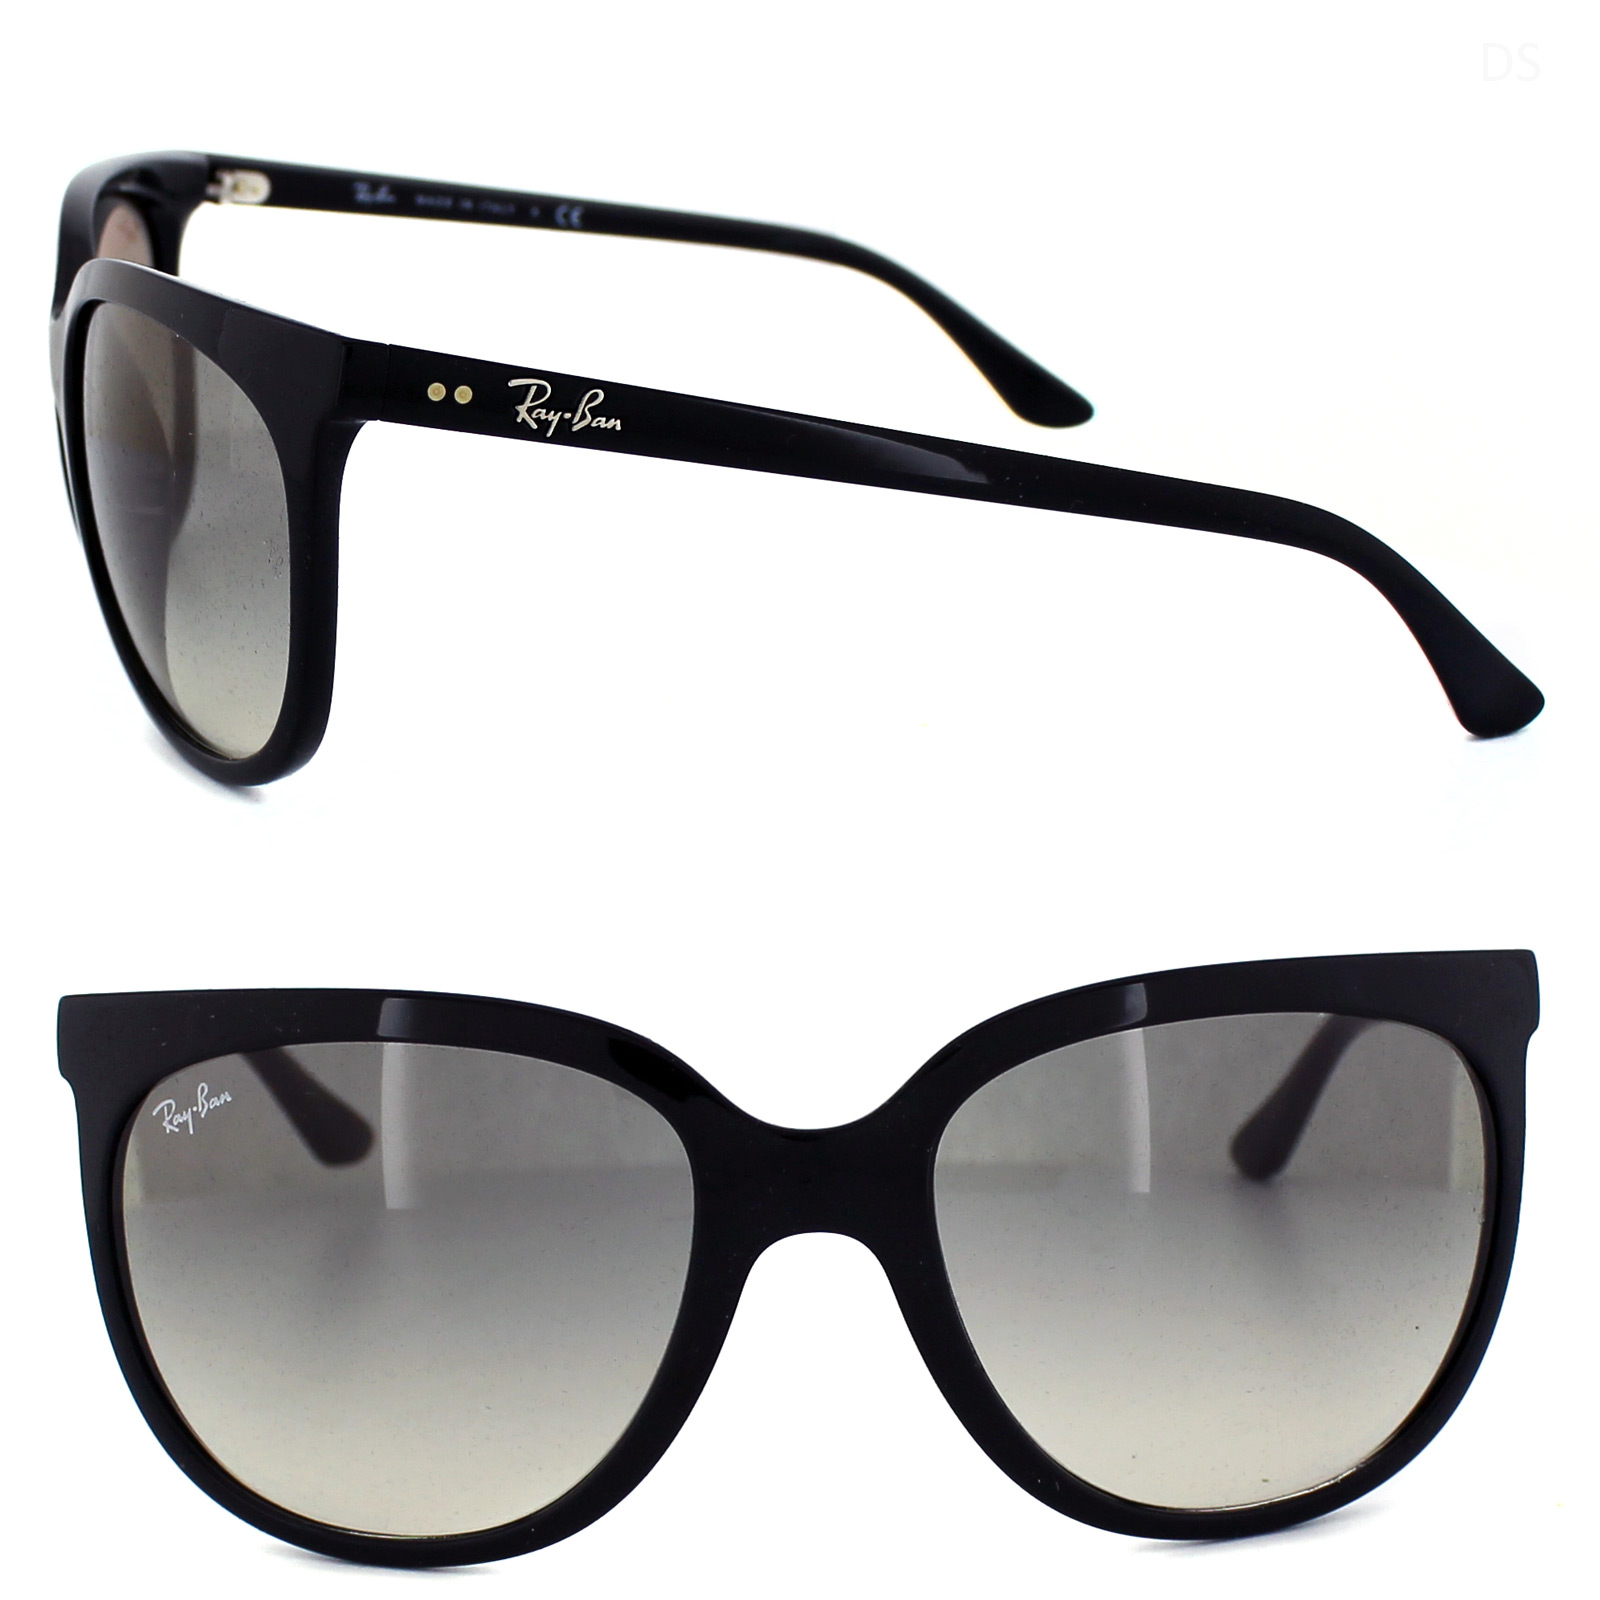 23cde382dce Cats 1000 Ray Ban Review « Heritage Malta